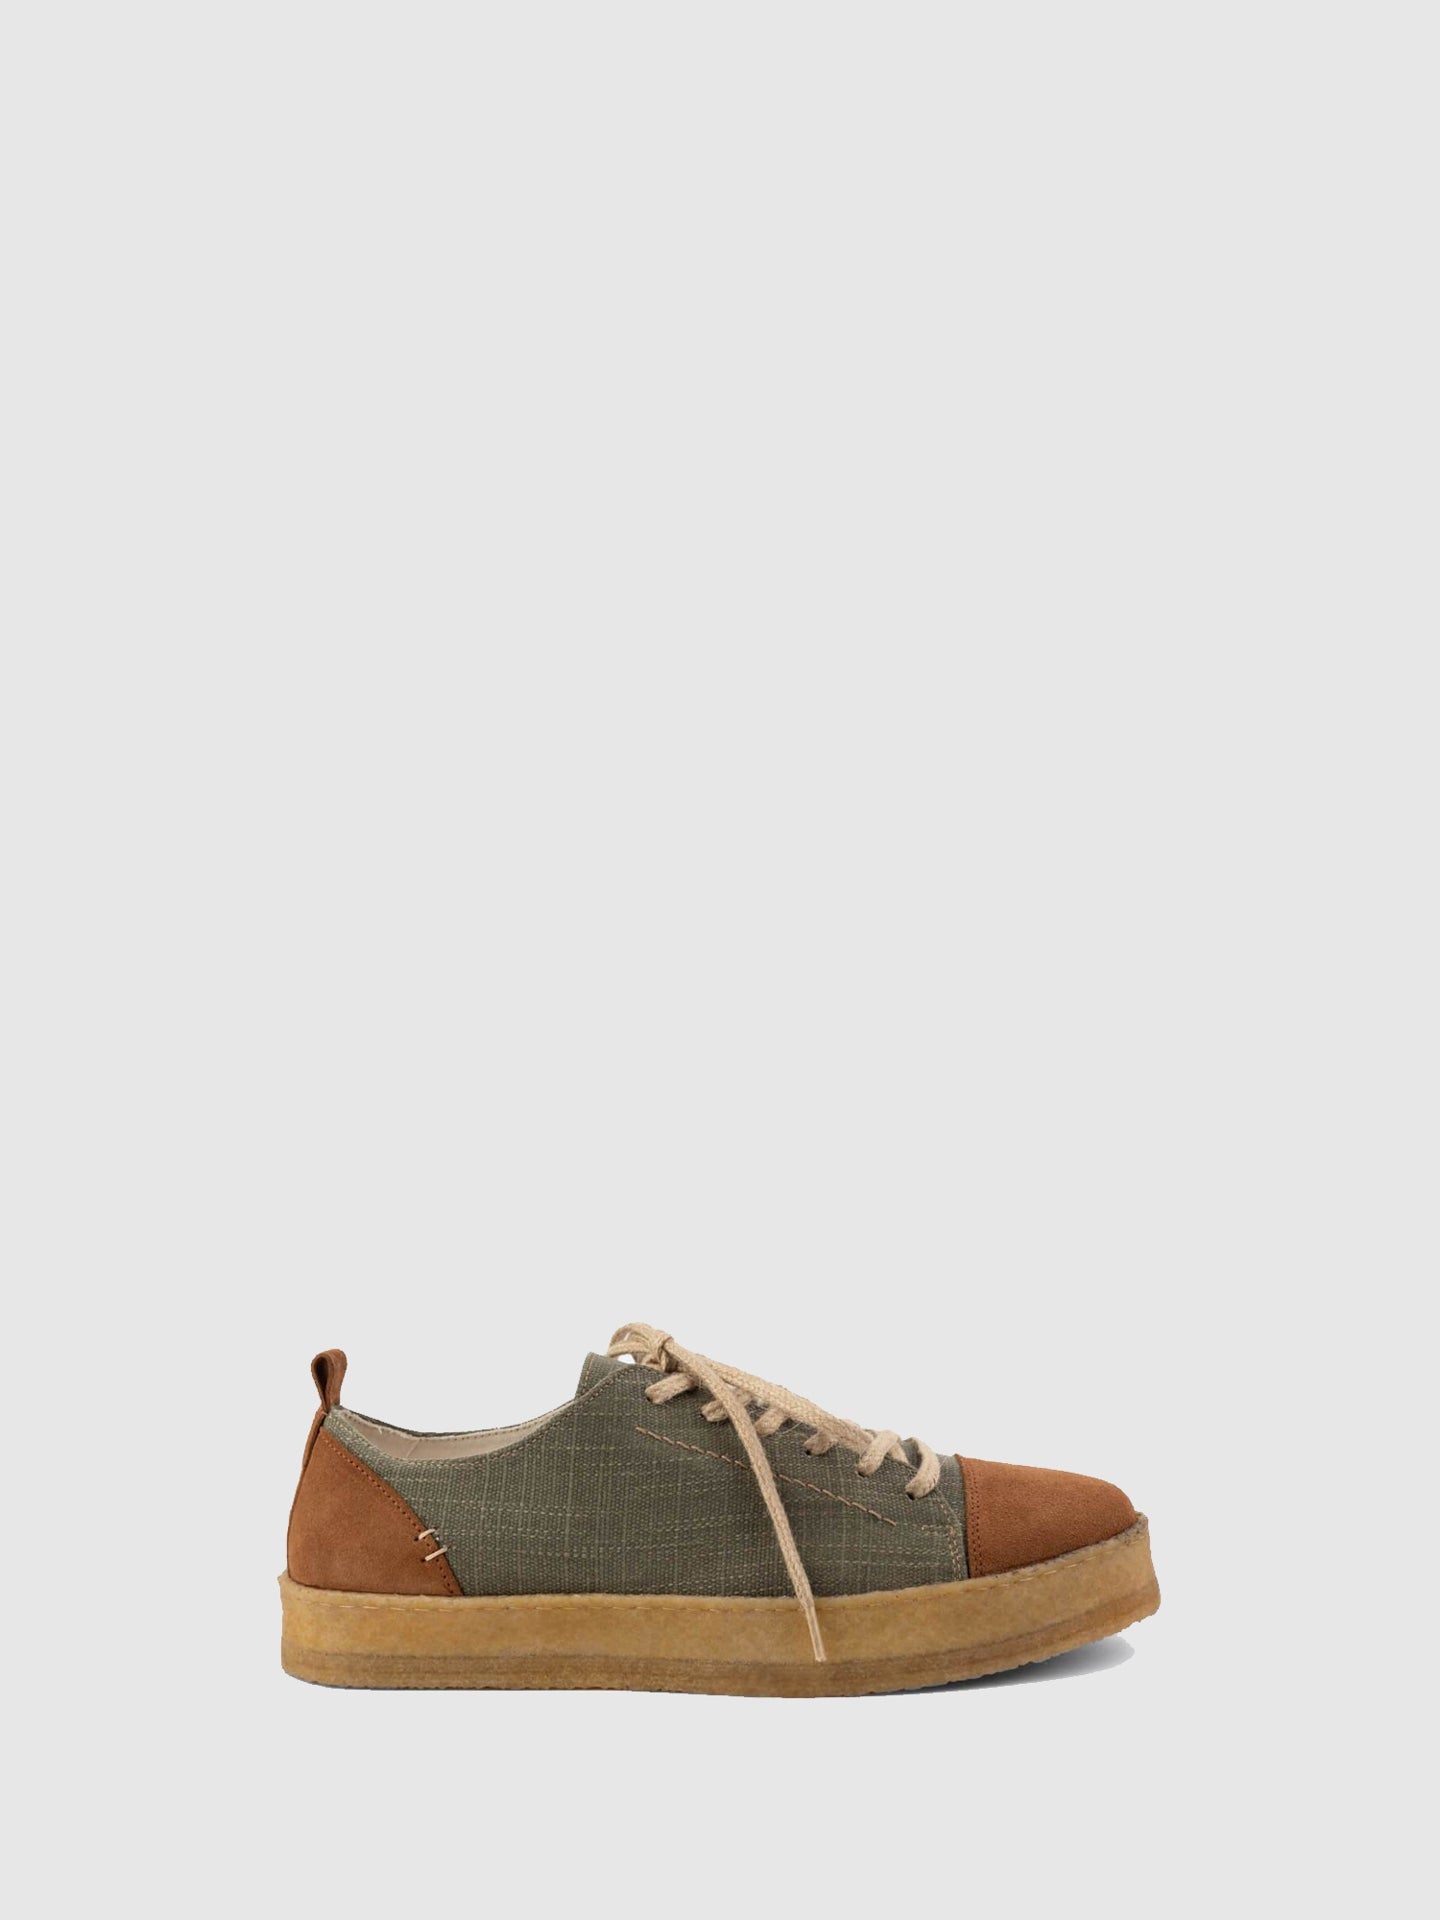 Lusquinos Camel Lace-up Shoes